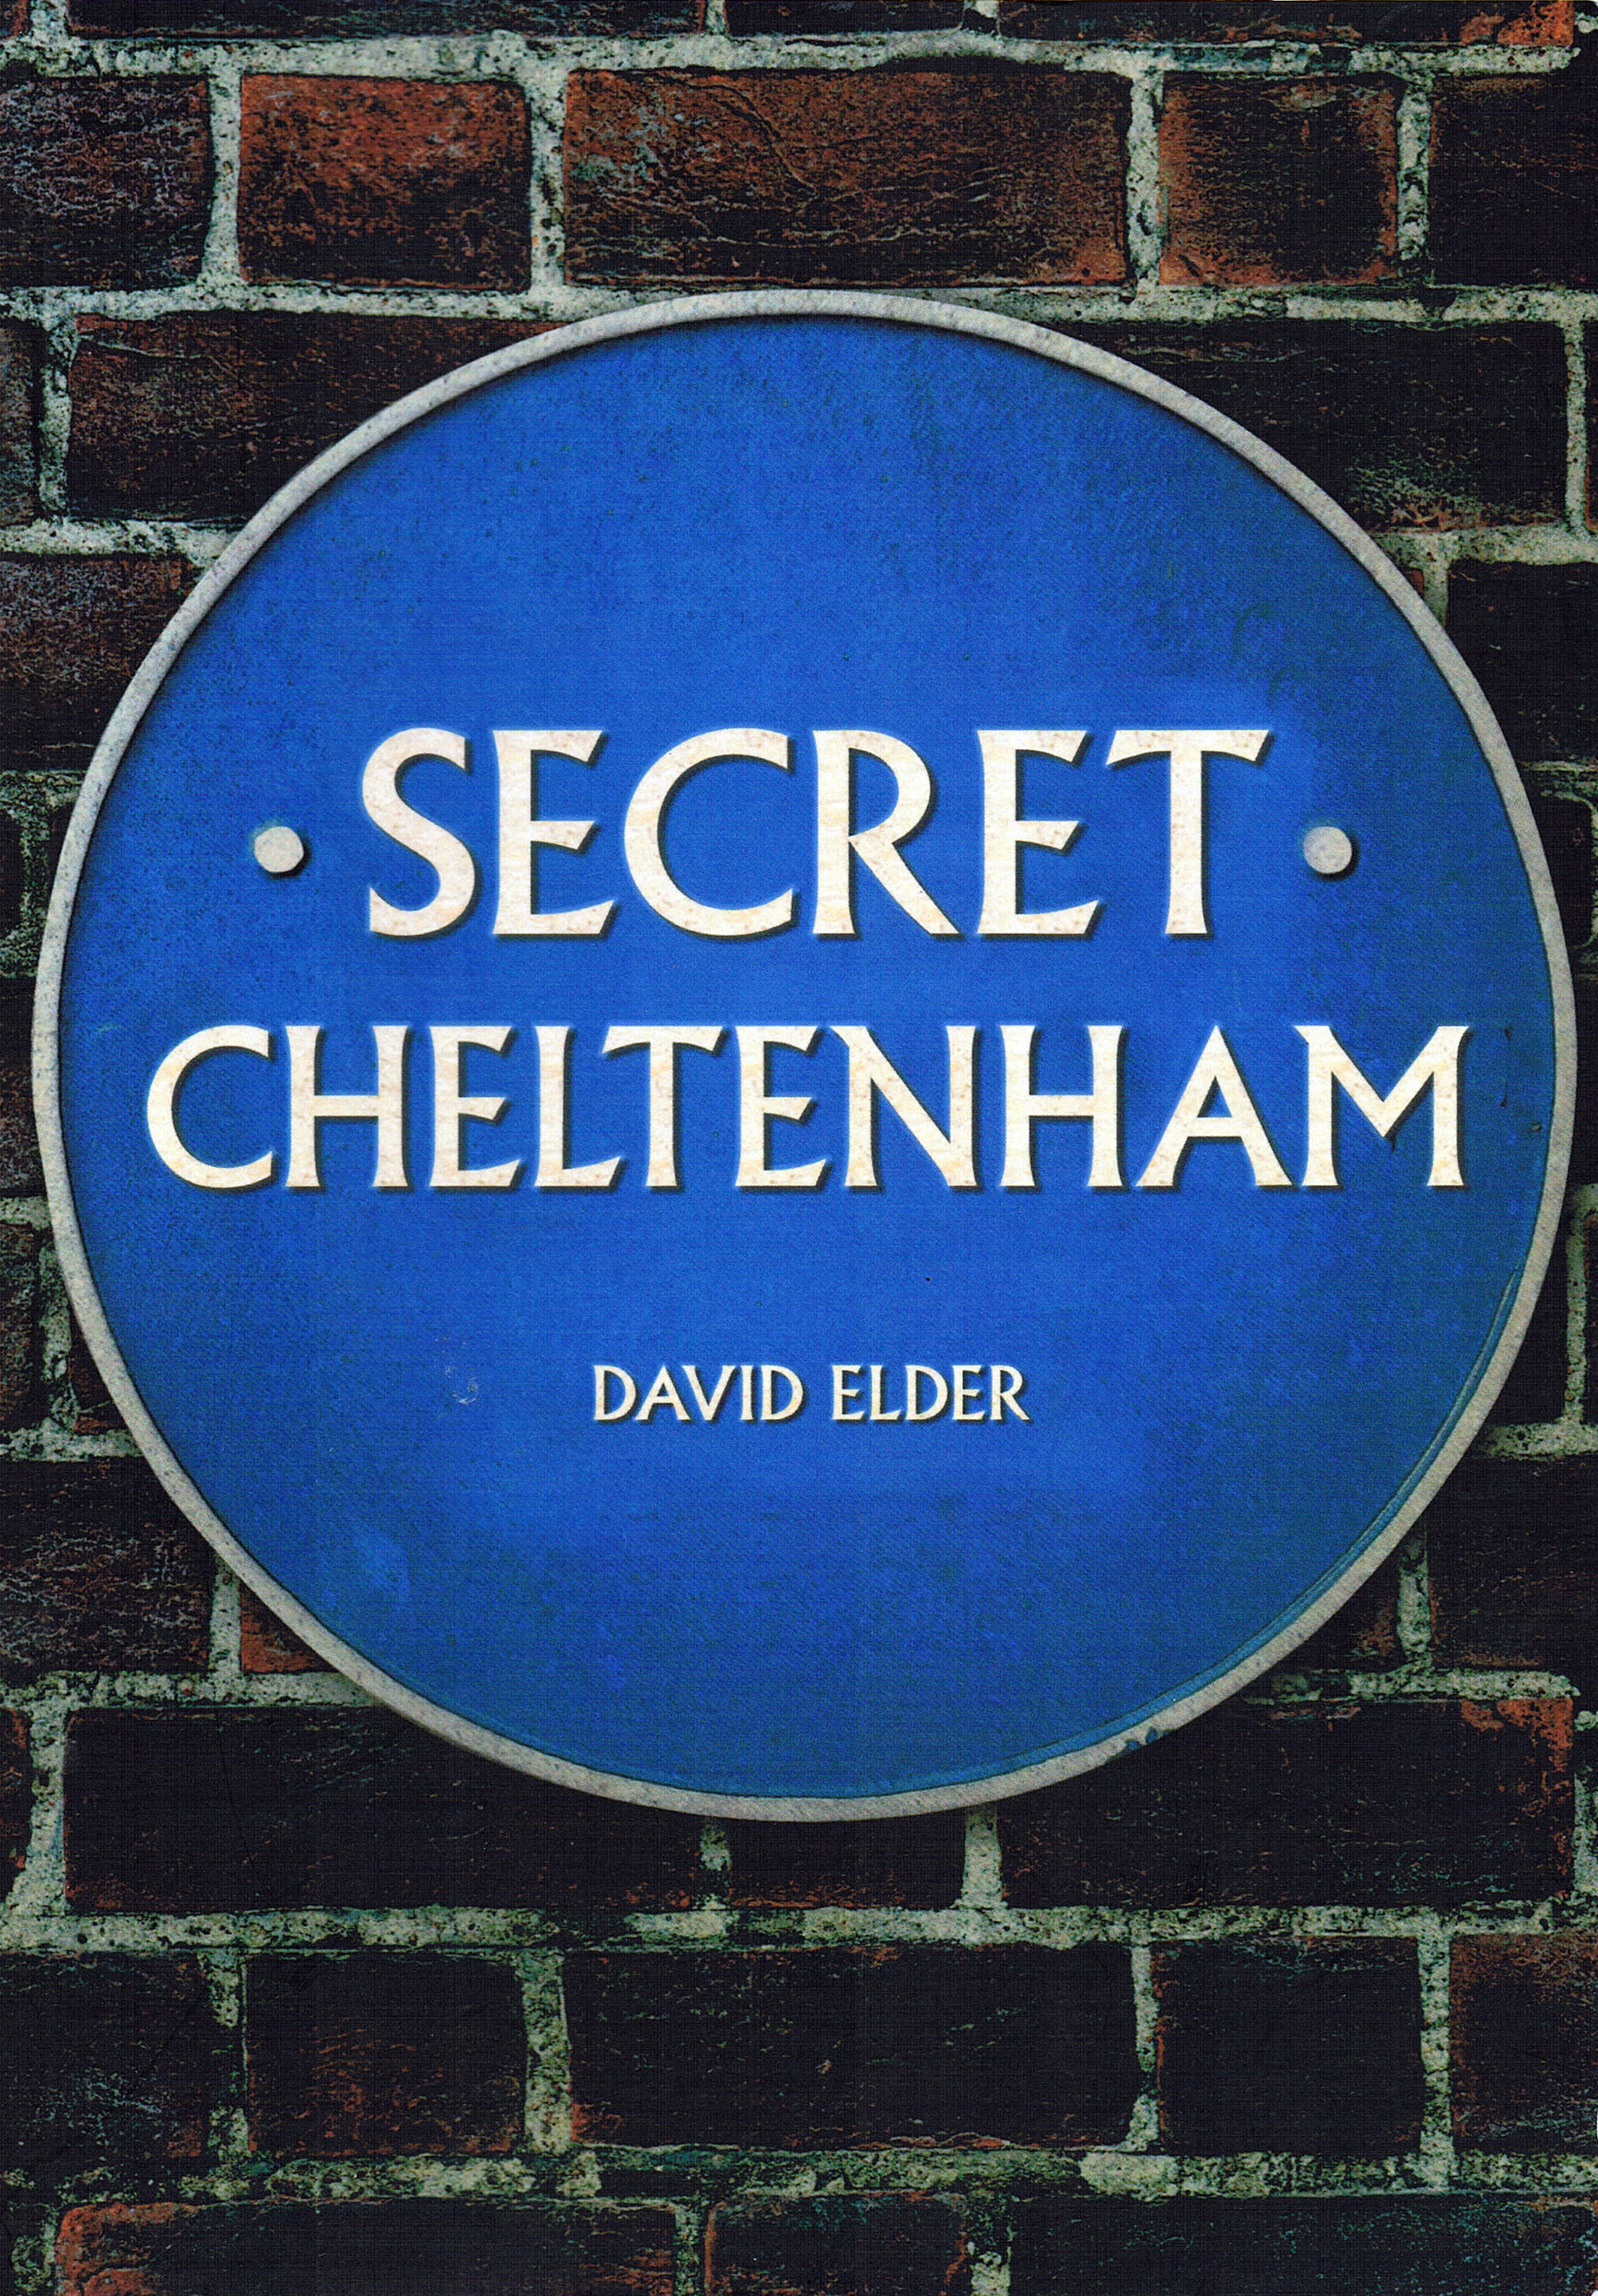 Secret Cheltenham_book cover.jpg